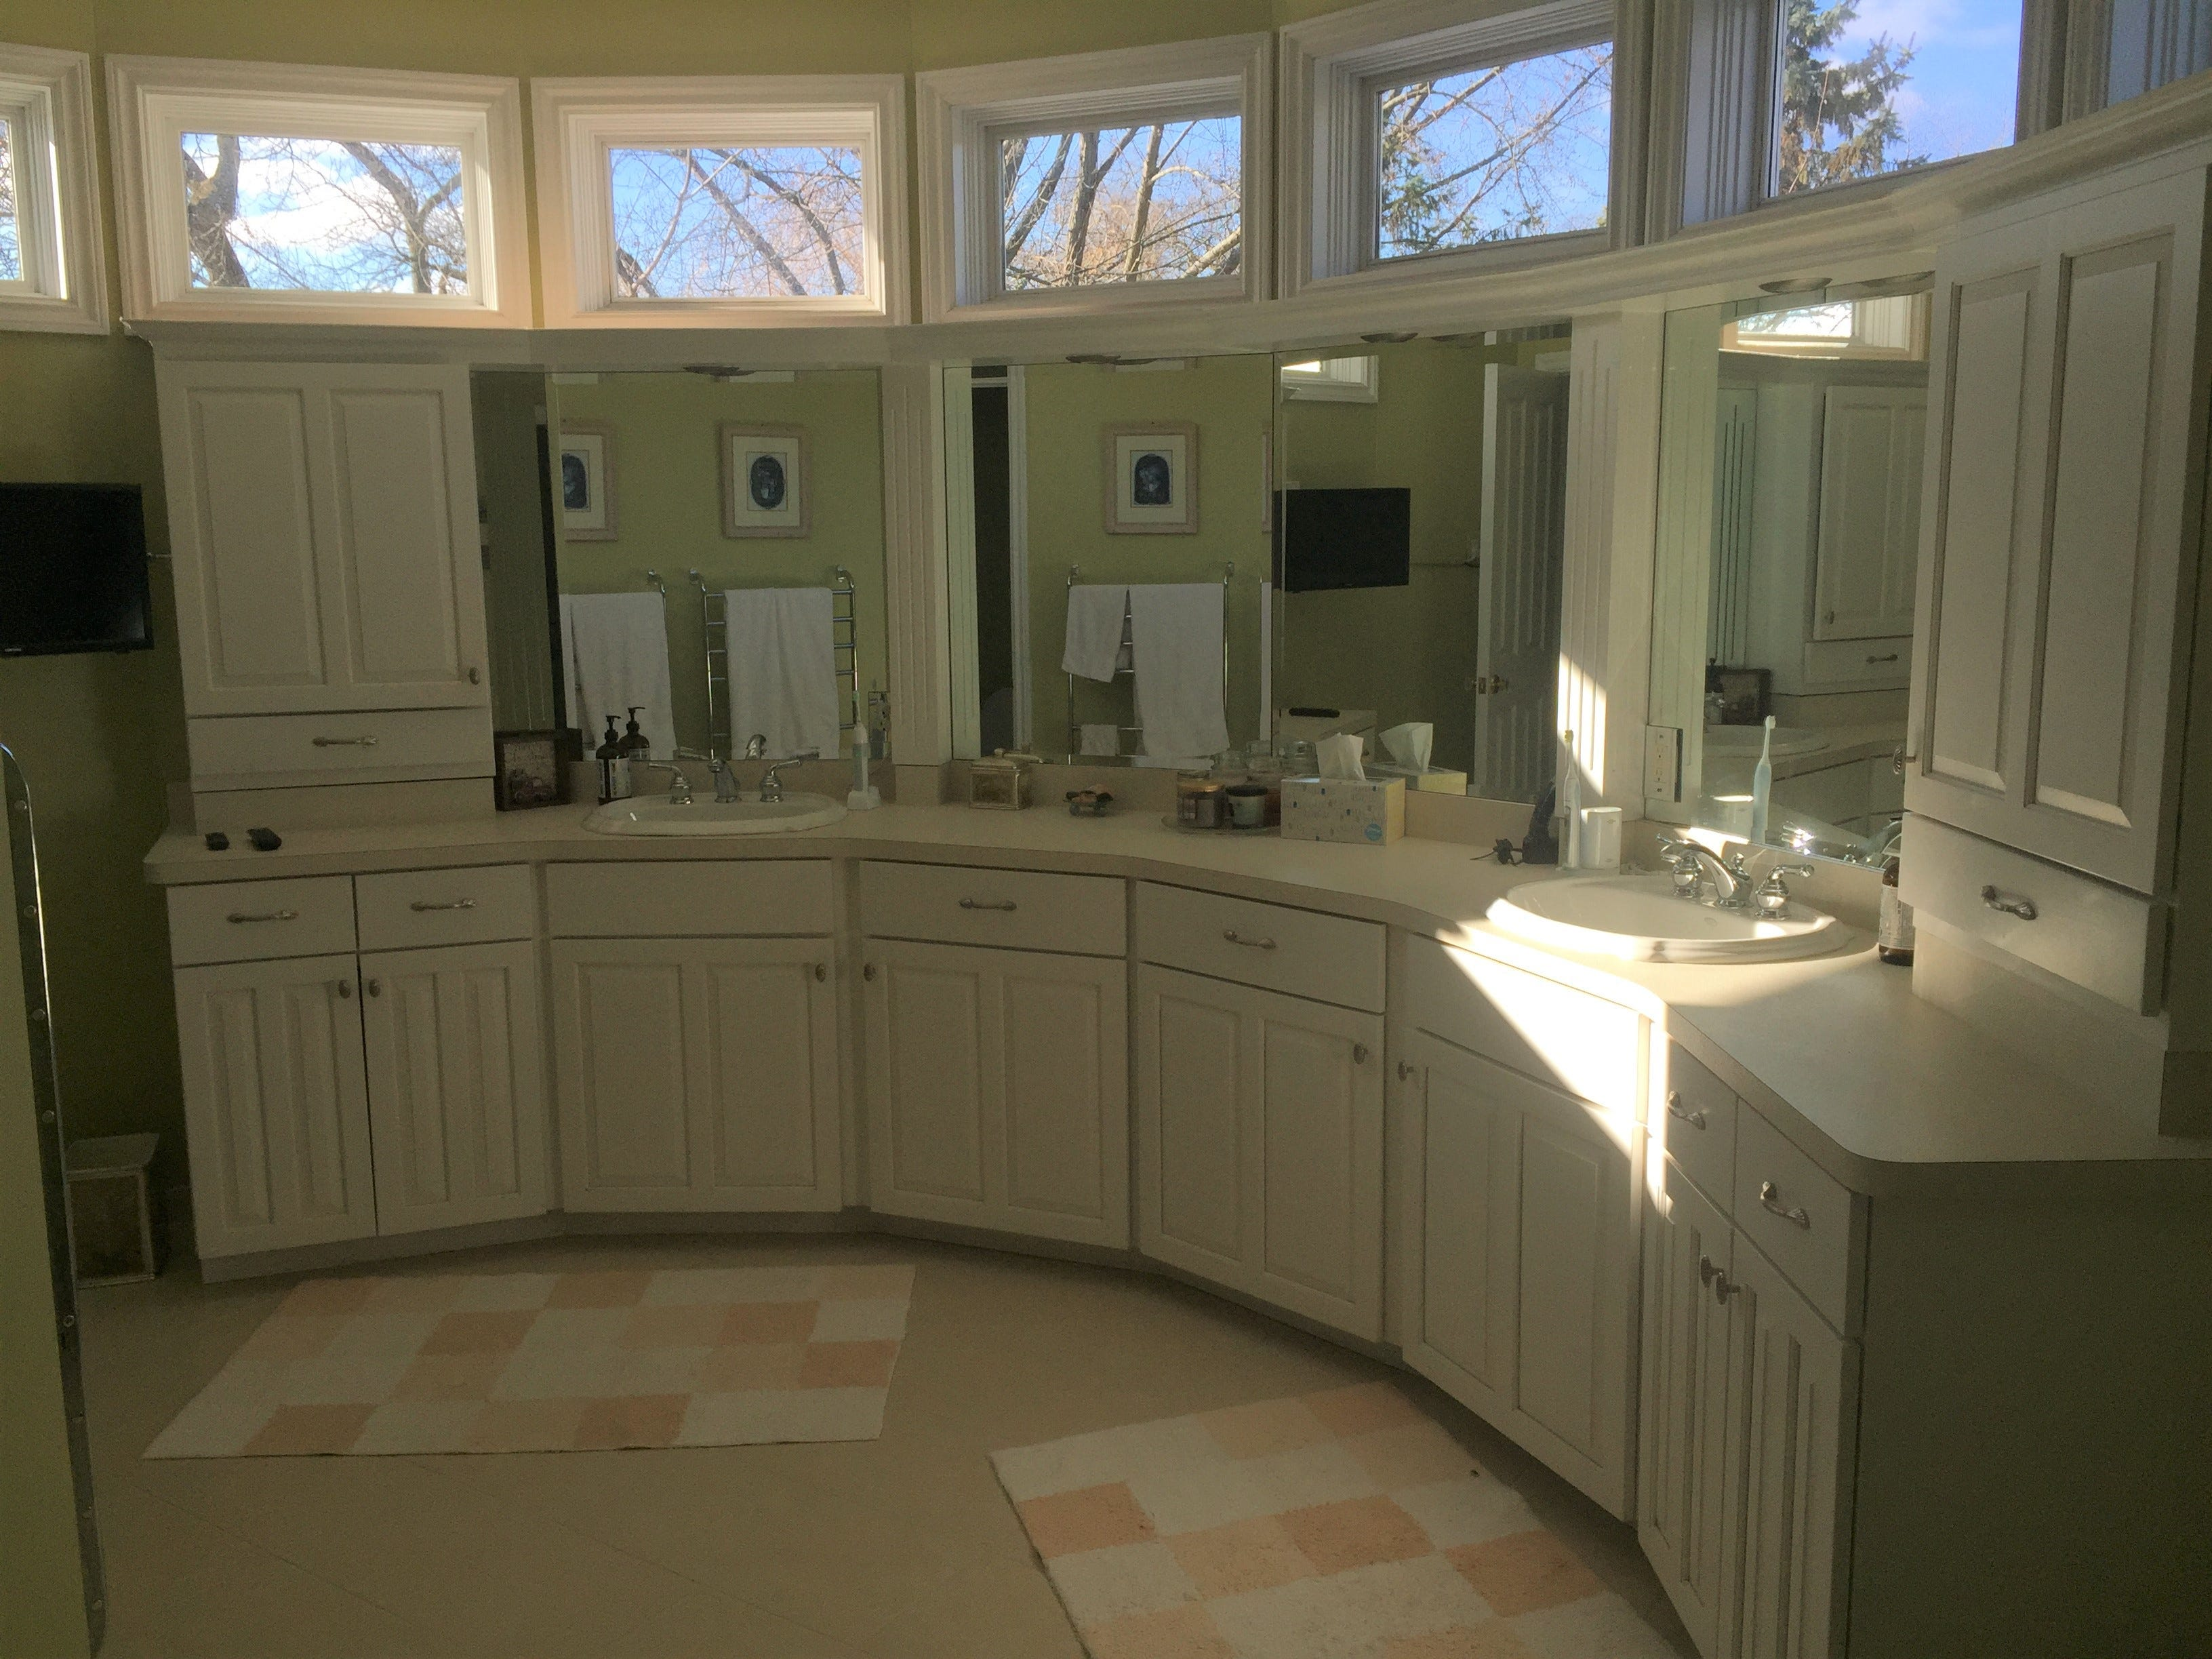 A master bathroom features a rounded counter in a Clifford Road home in Genoa Township, shown Tuesday, Dec. 4, 2018